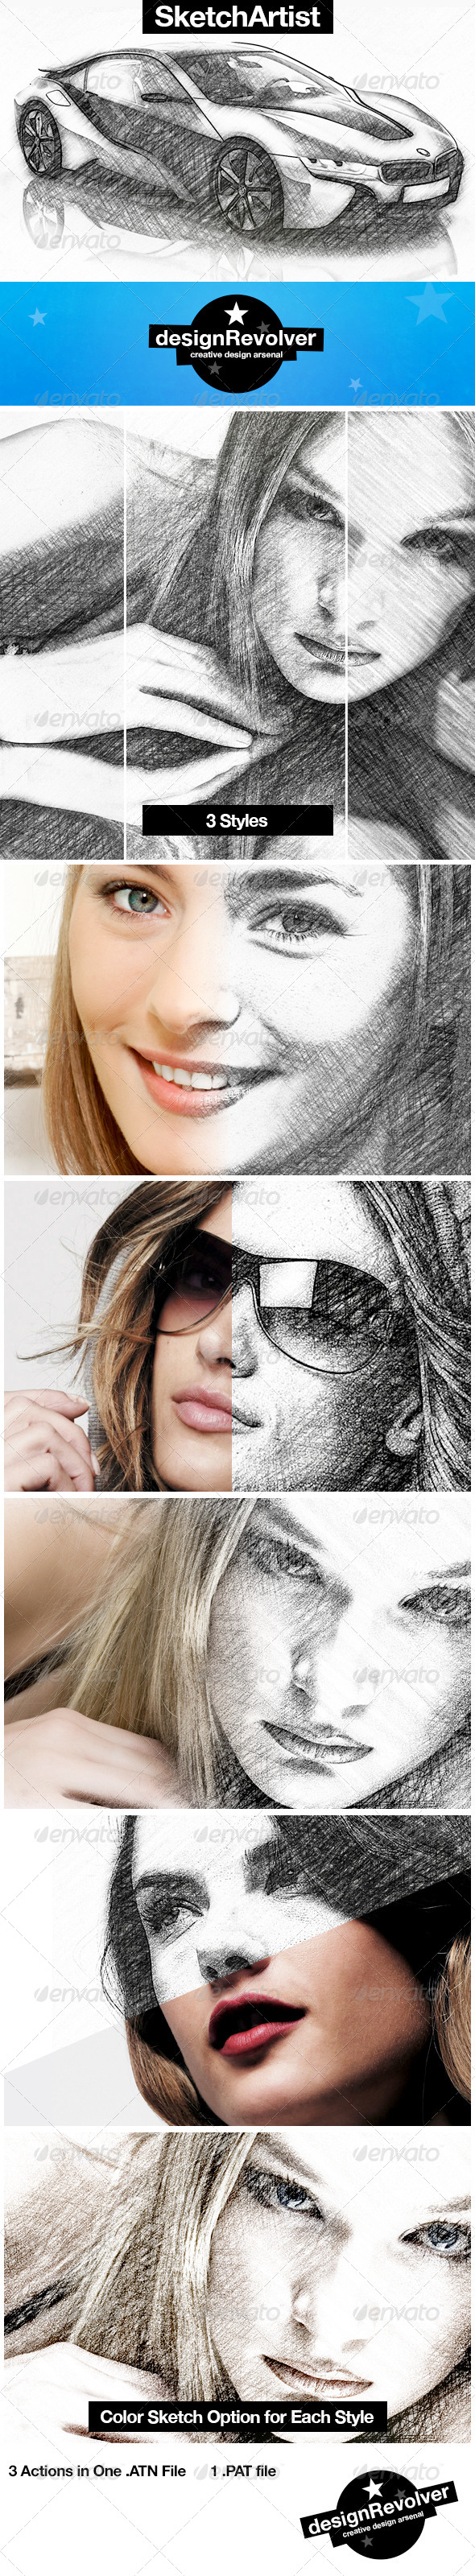 How to color your art in photoshop - Sketch Artist Photoshop Action Graphicriver Turn Your Photos Into Pencil Sketches With Sketchartist Actions